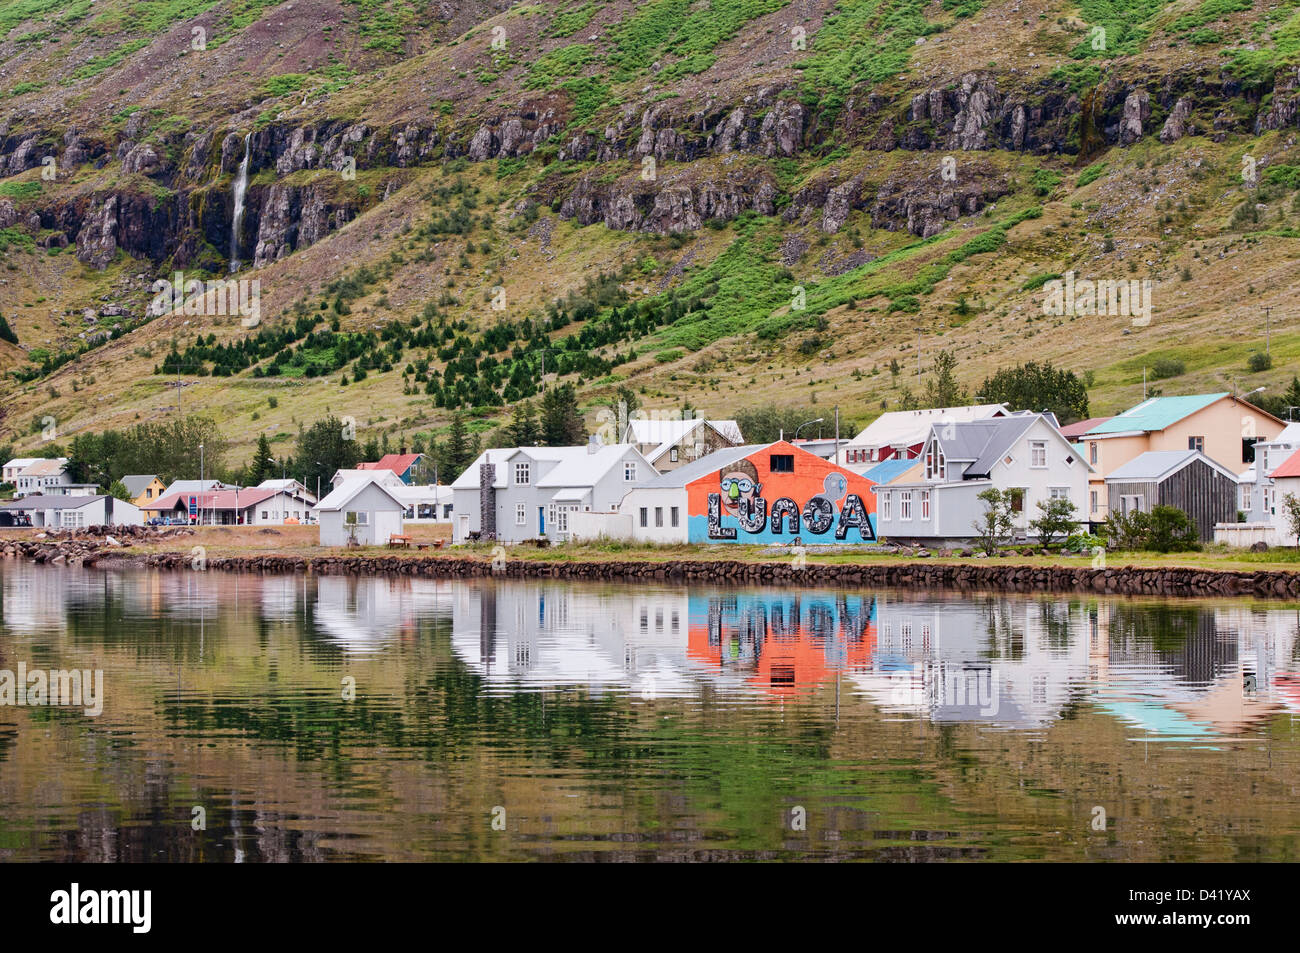 view of the town of Seydisfjordur, Iceland - Stock Image